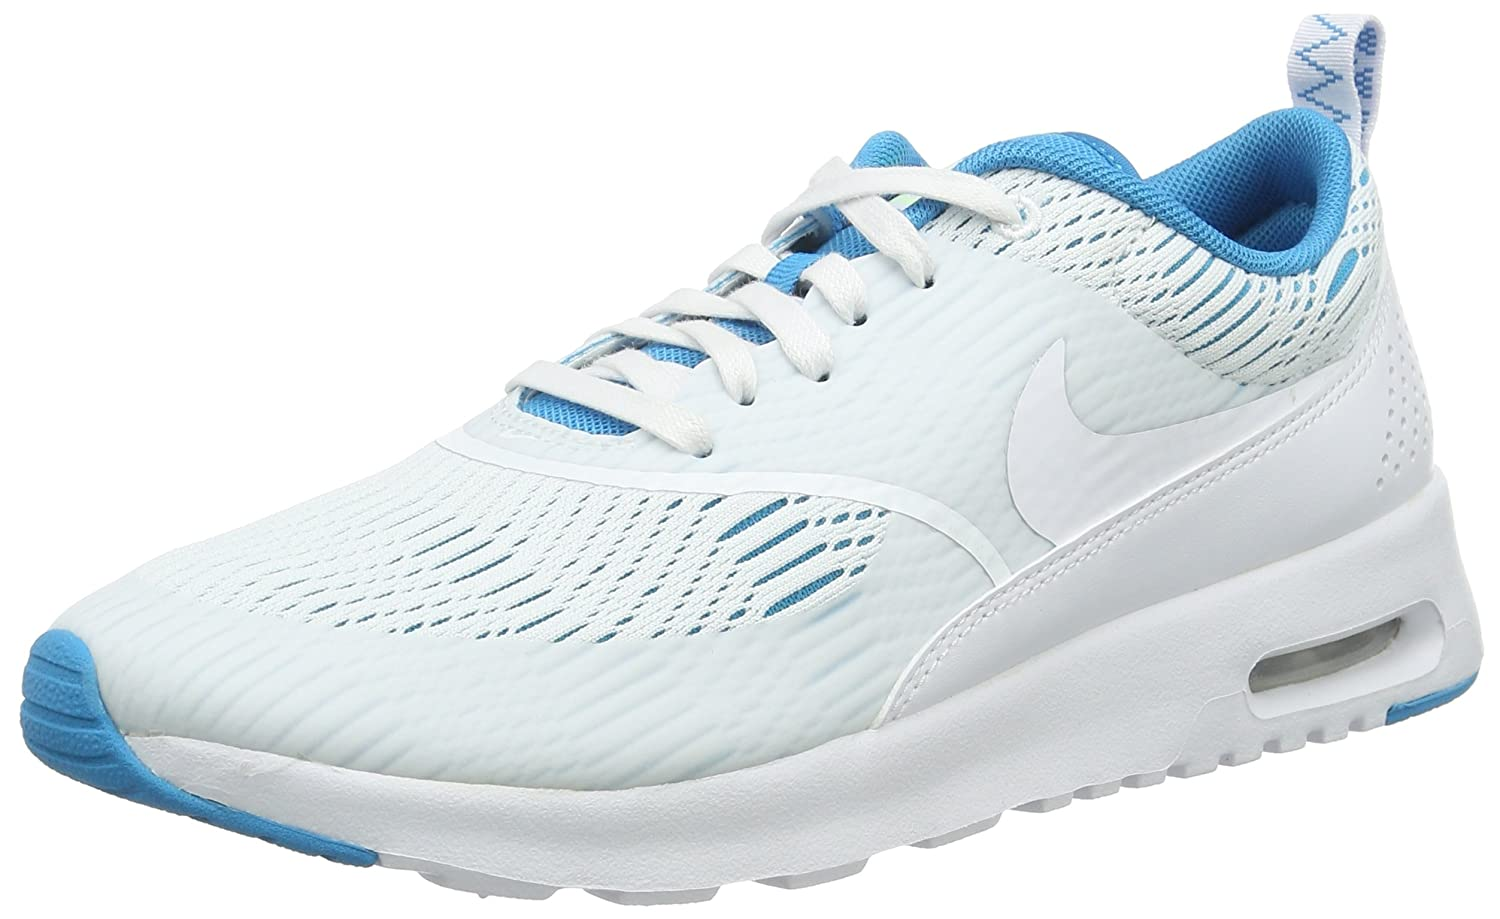 White bluee Lagoon Ghost Green Nike Women's Air Max Thea Low-Top Sneakers, Black